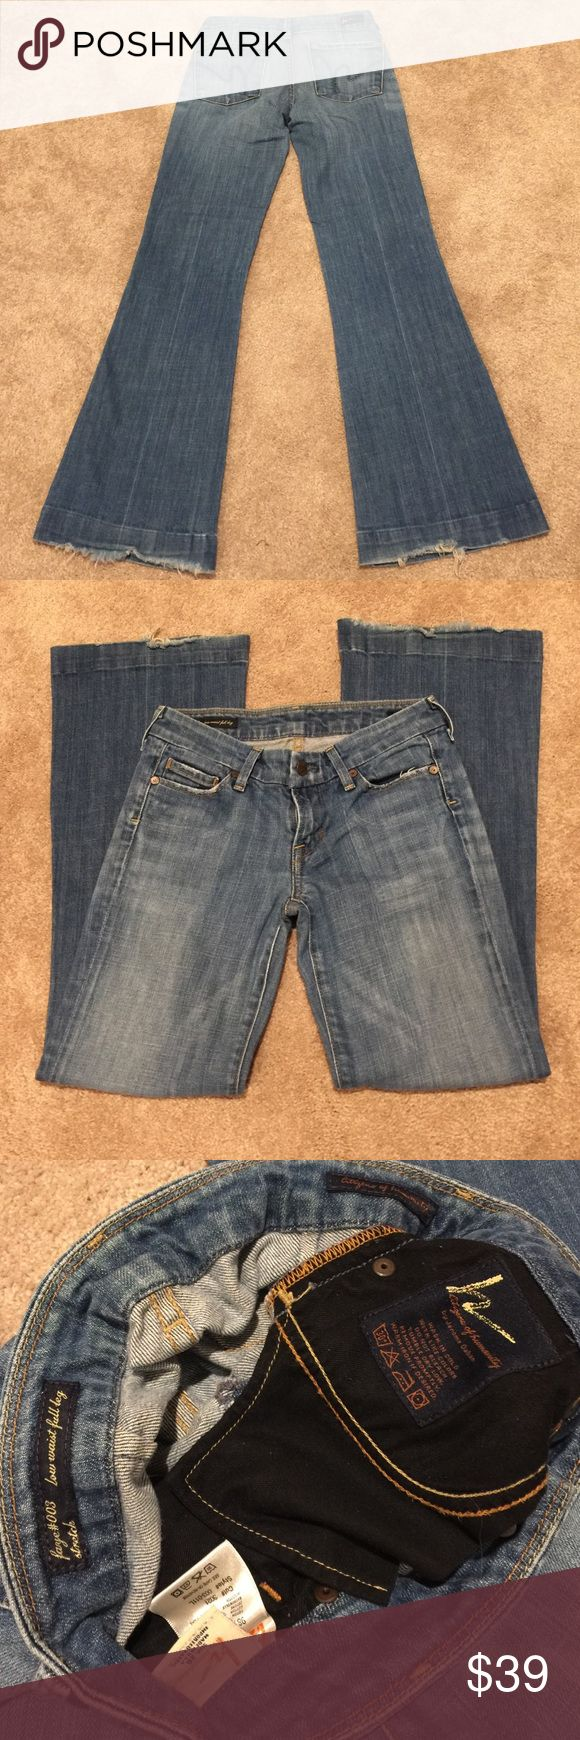 🌸🌼 CITIZEN JEANS 🌼🌸 🌸🌼 CITIZEN JEANS 🌼🌸 These Jeans are in great condition 29 inch inseam boot cut.  Has preloved wear at the bottom nicely broken in. Citizens of Humanity Pants Boot Cut & Flare